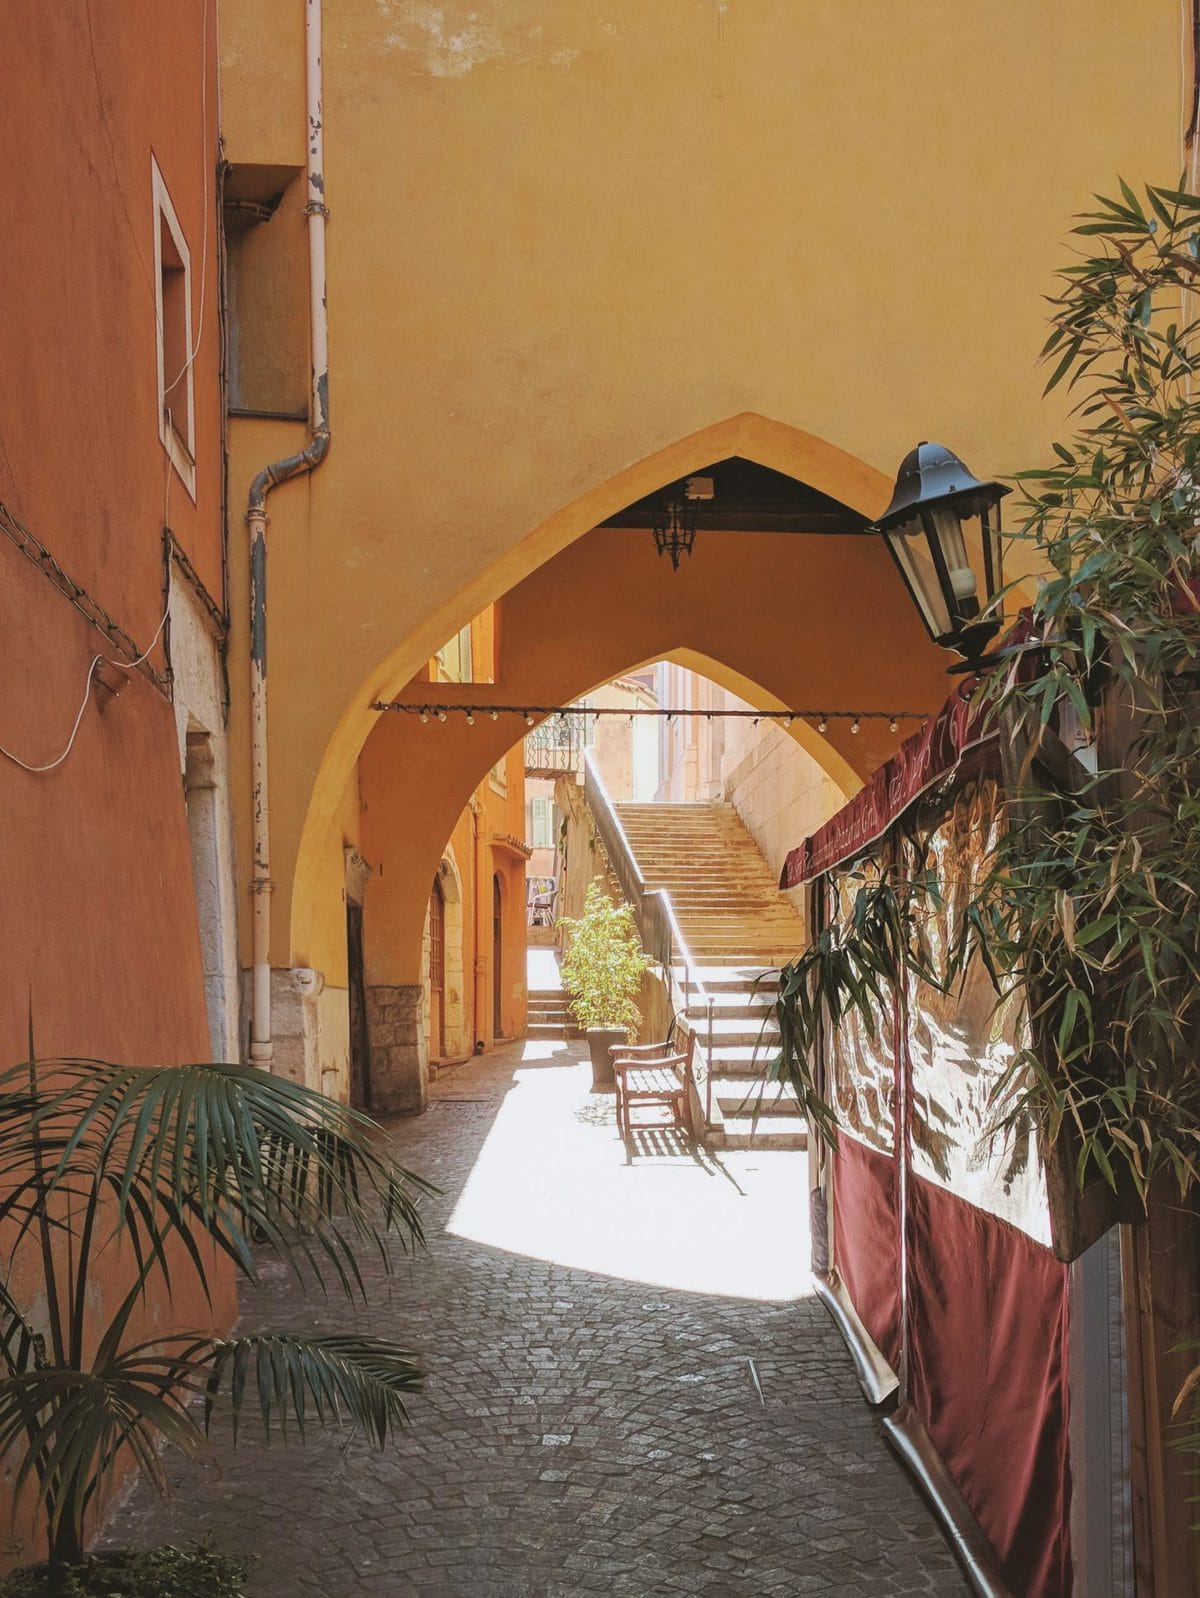 Pink and orange archway in Villefranche-sur-Mer, France